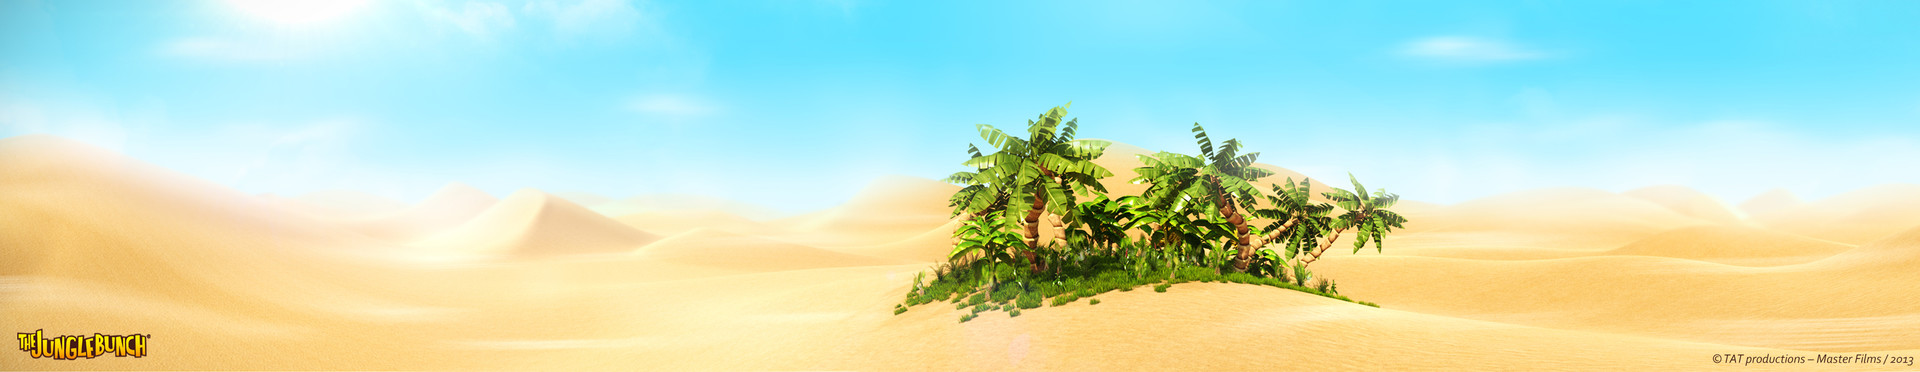 Mickael lelievre oasis path pano 01